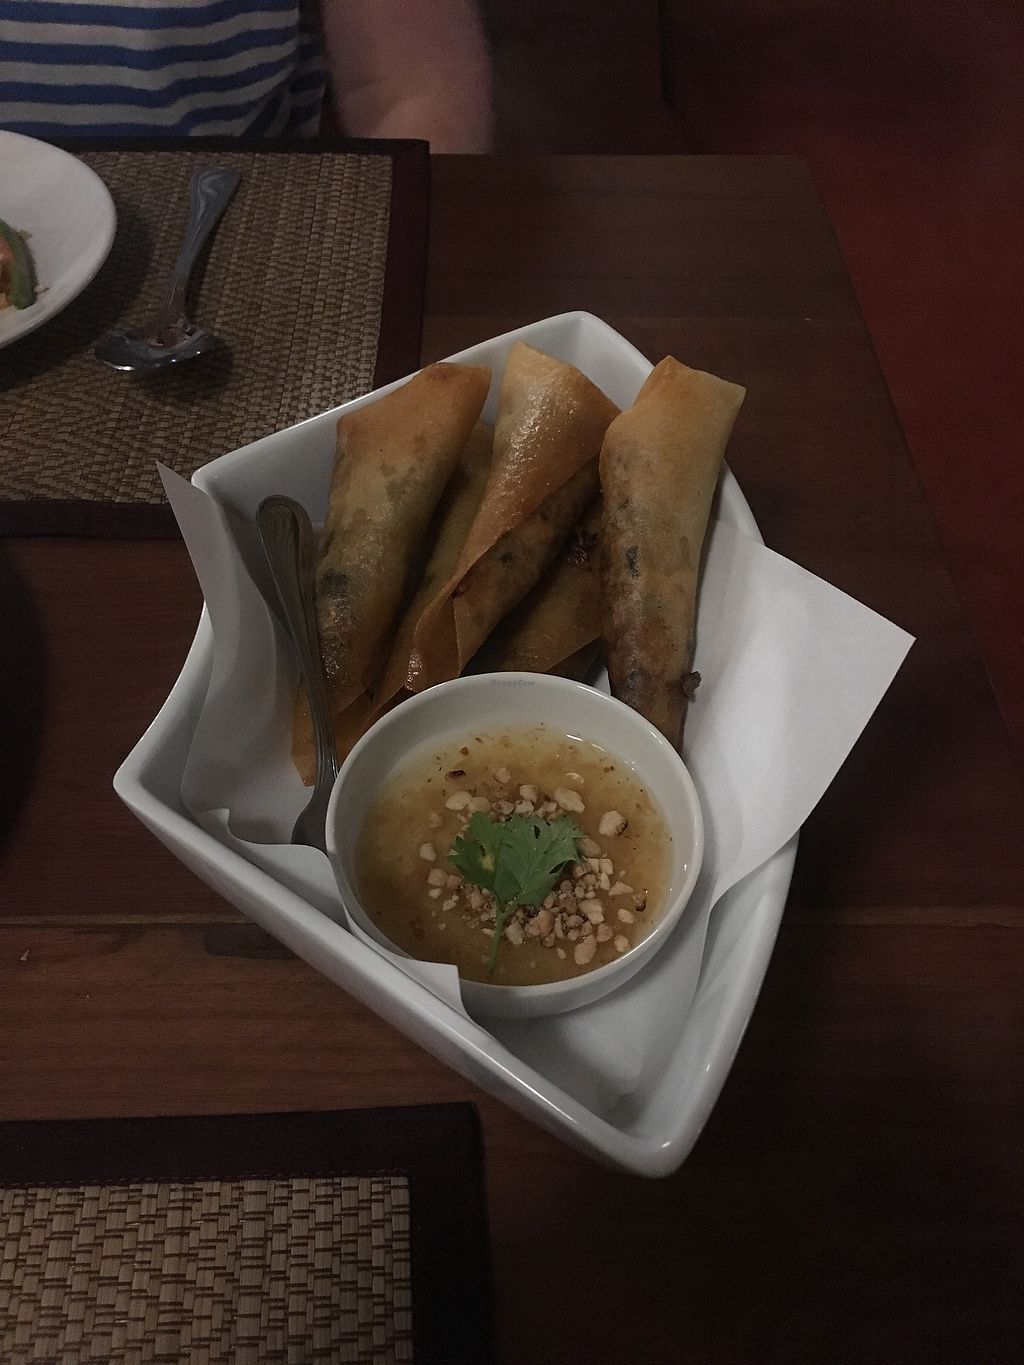 "Photo of Goodsouls Kitchen  by <a href=""/members/profile/Eats_out"">Eats_out</a> <br/>Amazing spring rolls  <br/> January 2, 2018  - <a href='/contact/abuse/image/107183/342013'>Report</a>"